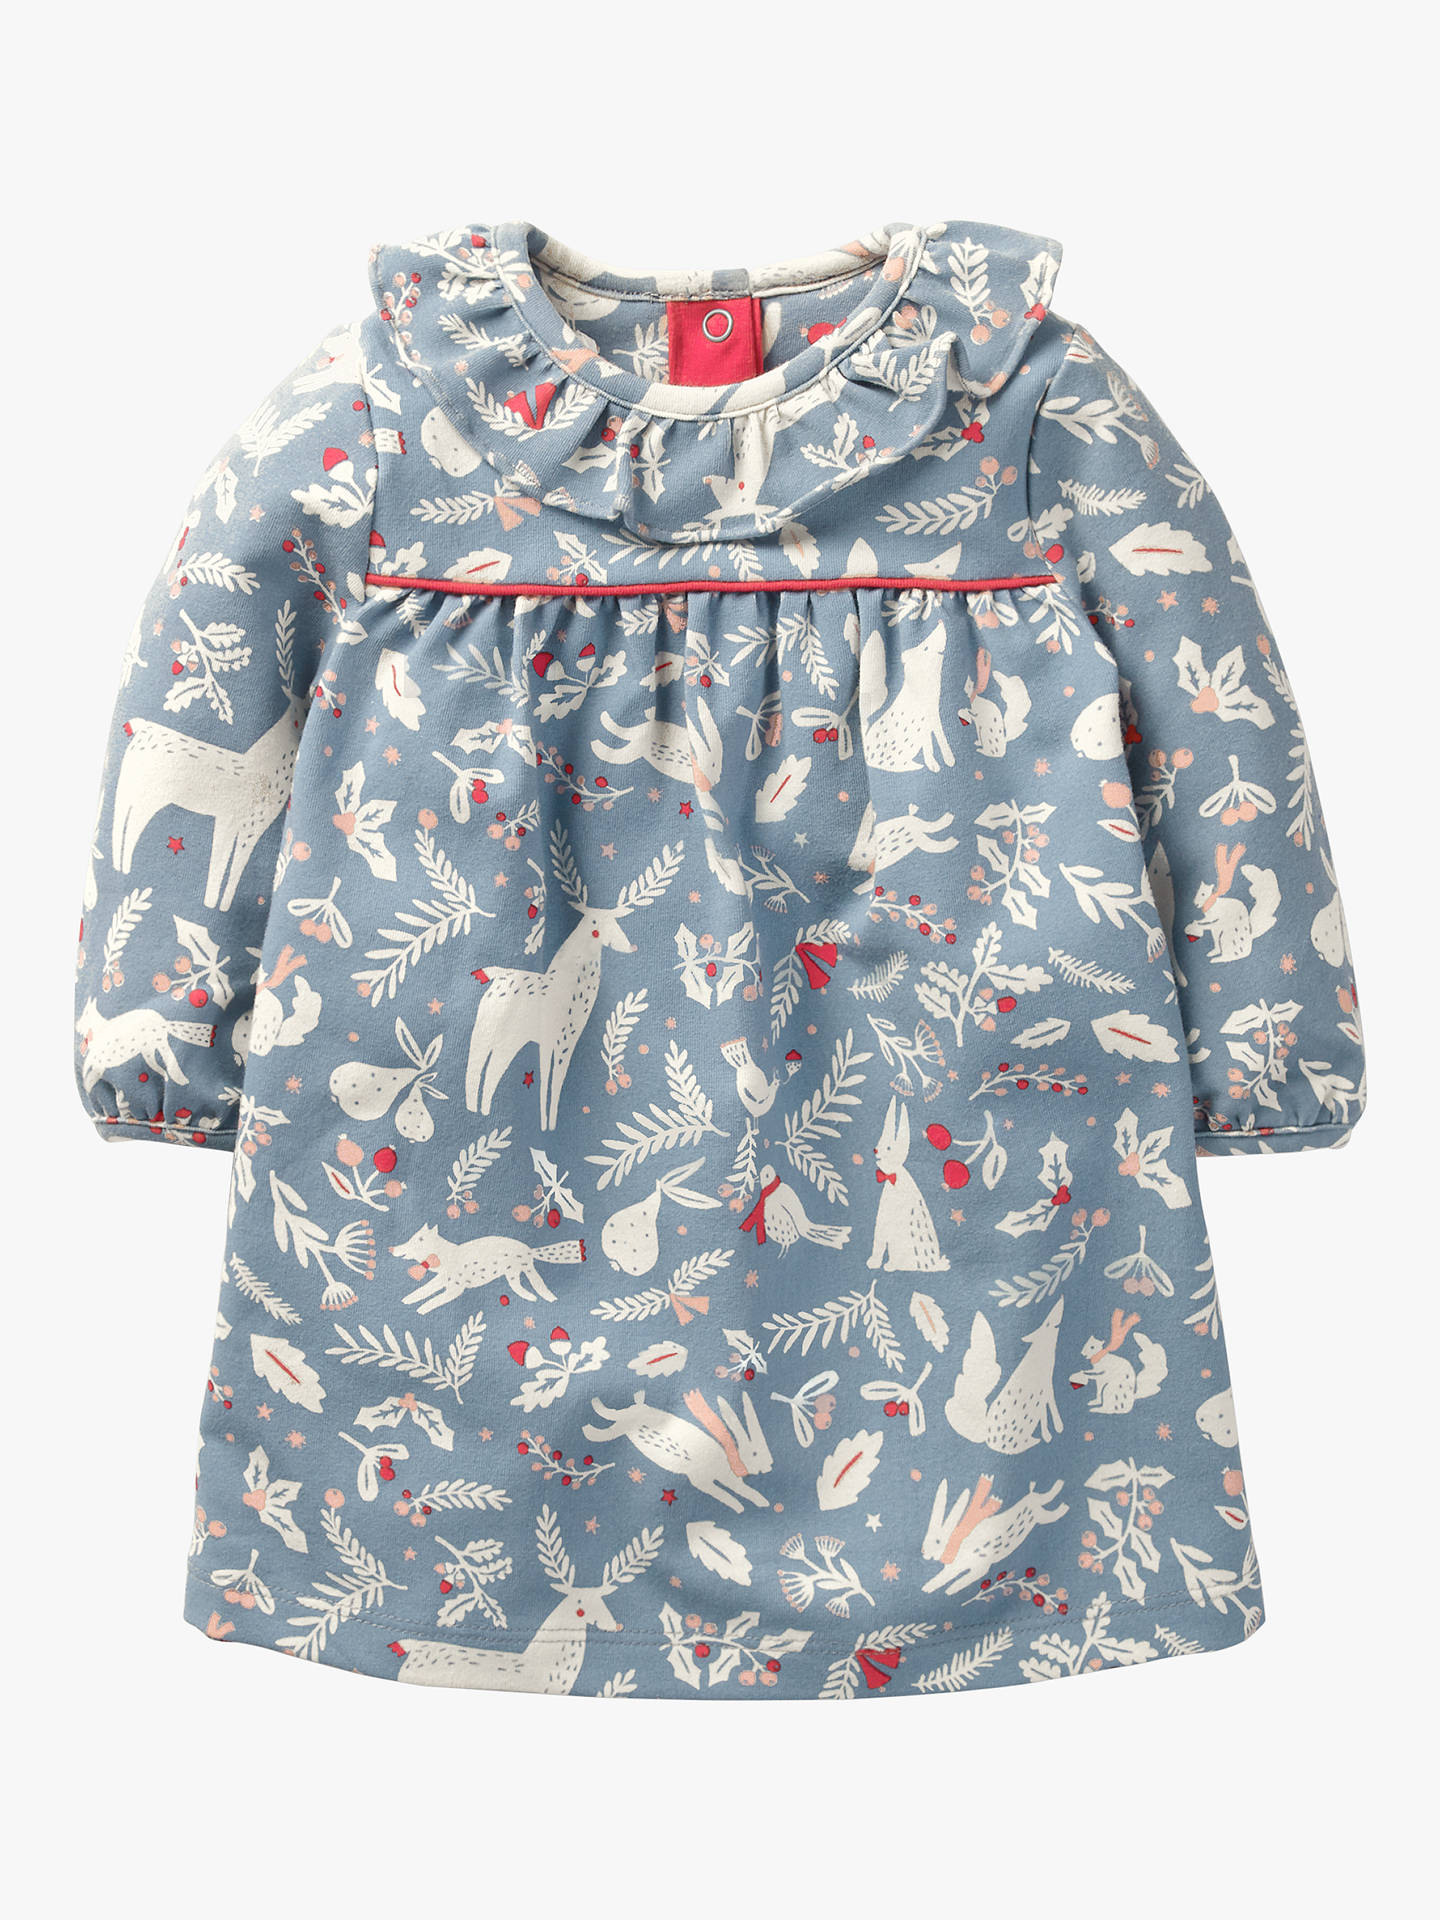 f94c8405e75e Buy Mini Boden Baby Christmas Animal Print Dress, Boathouse Blue, 3-6 months  ...